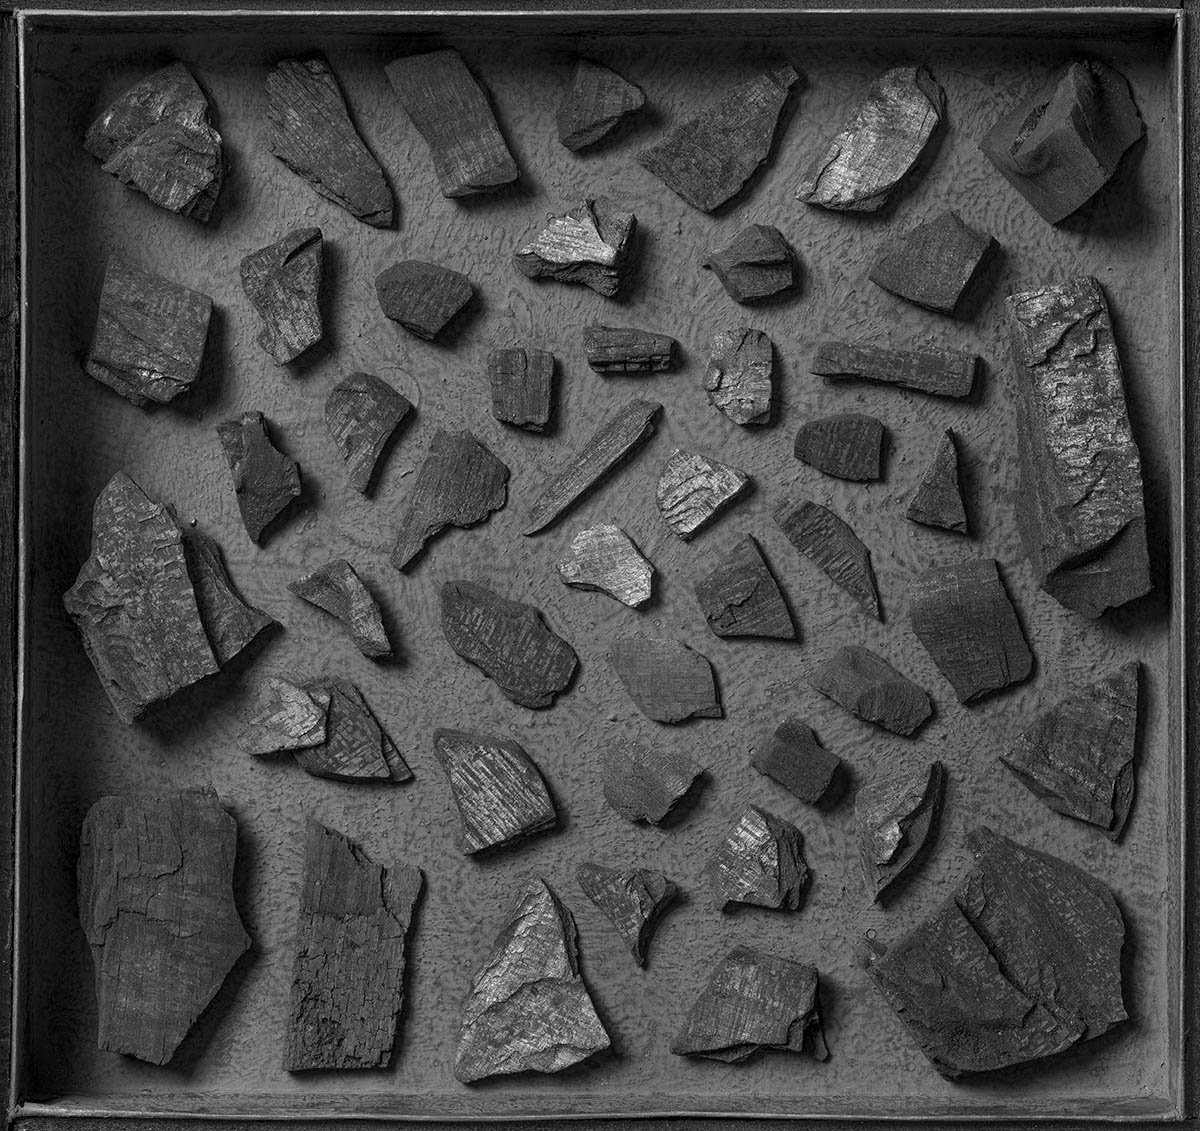 A still-life photograph of an arrangement of pieces of charcoal in a shallow black box.